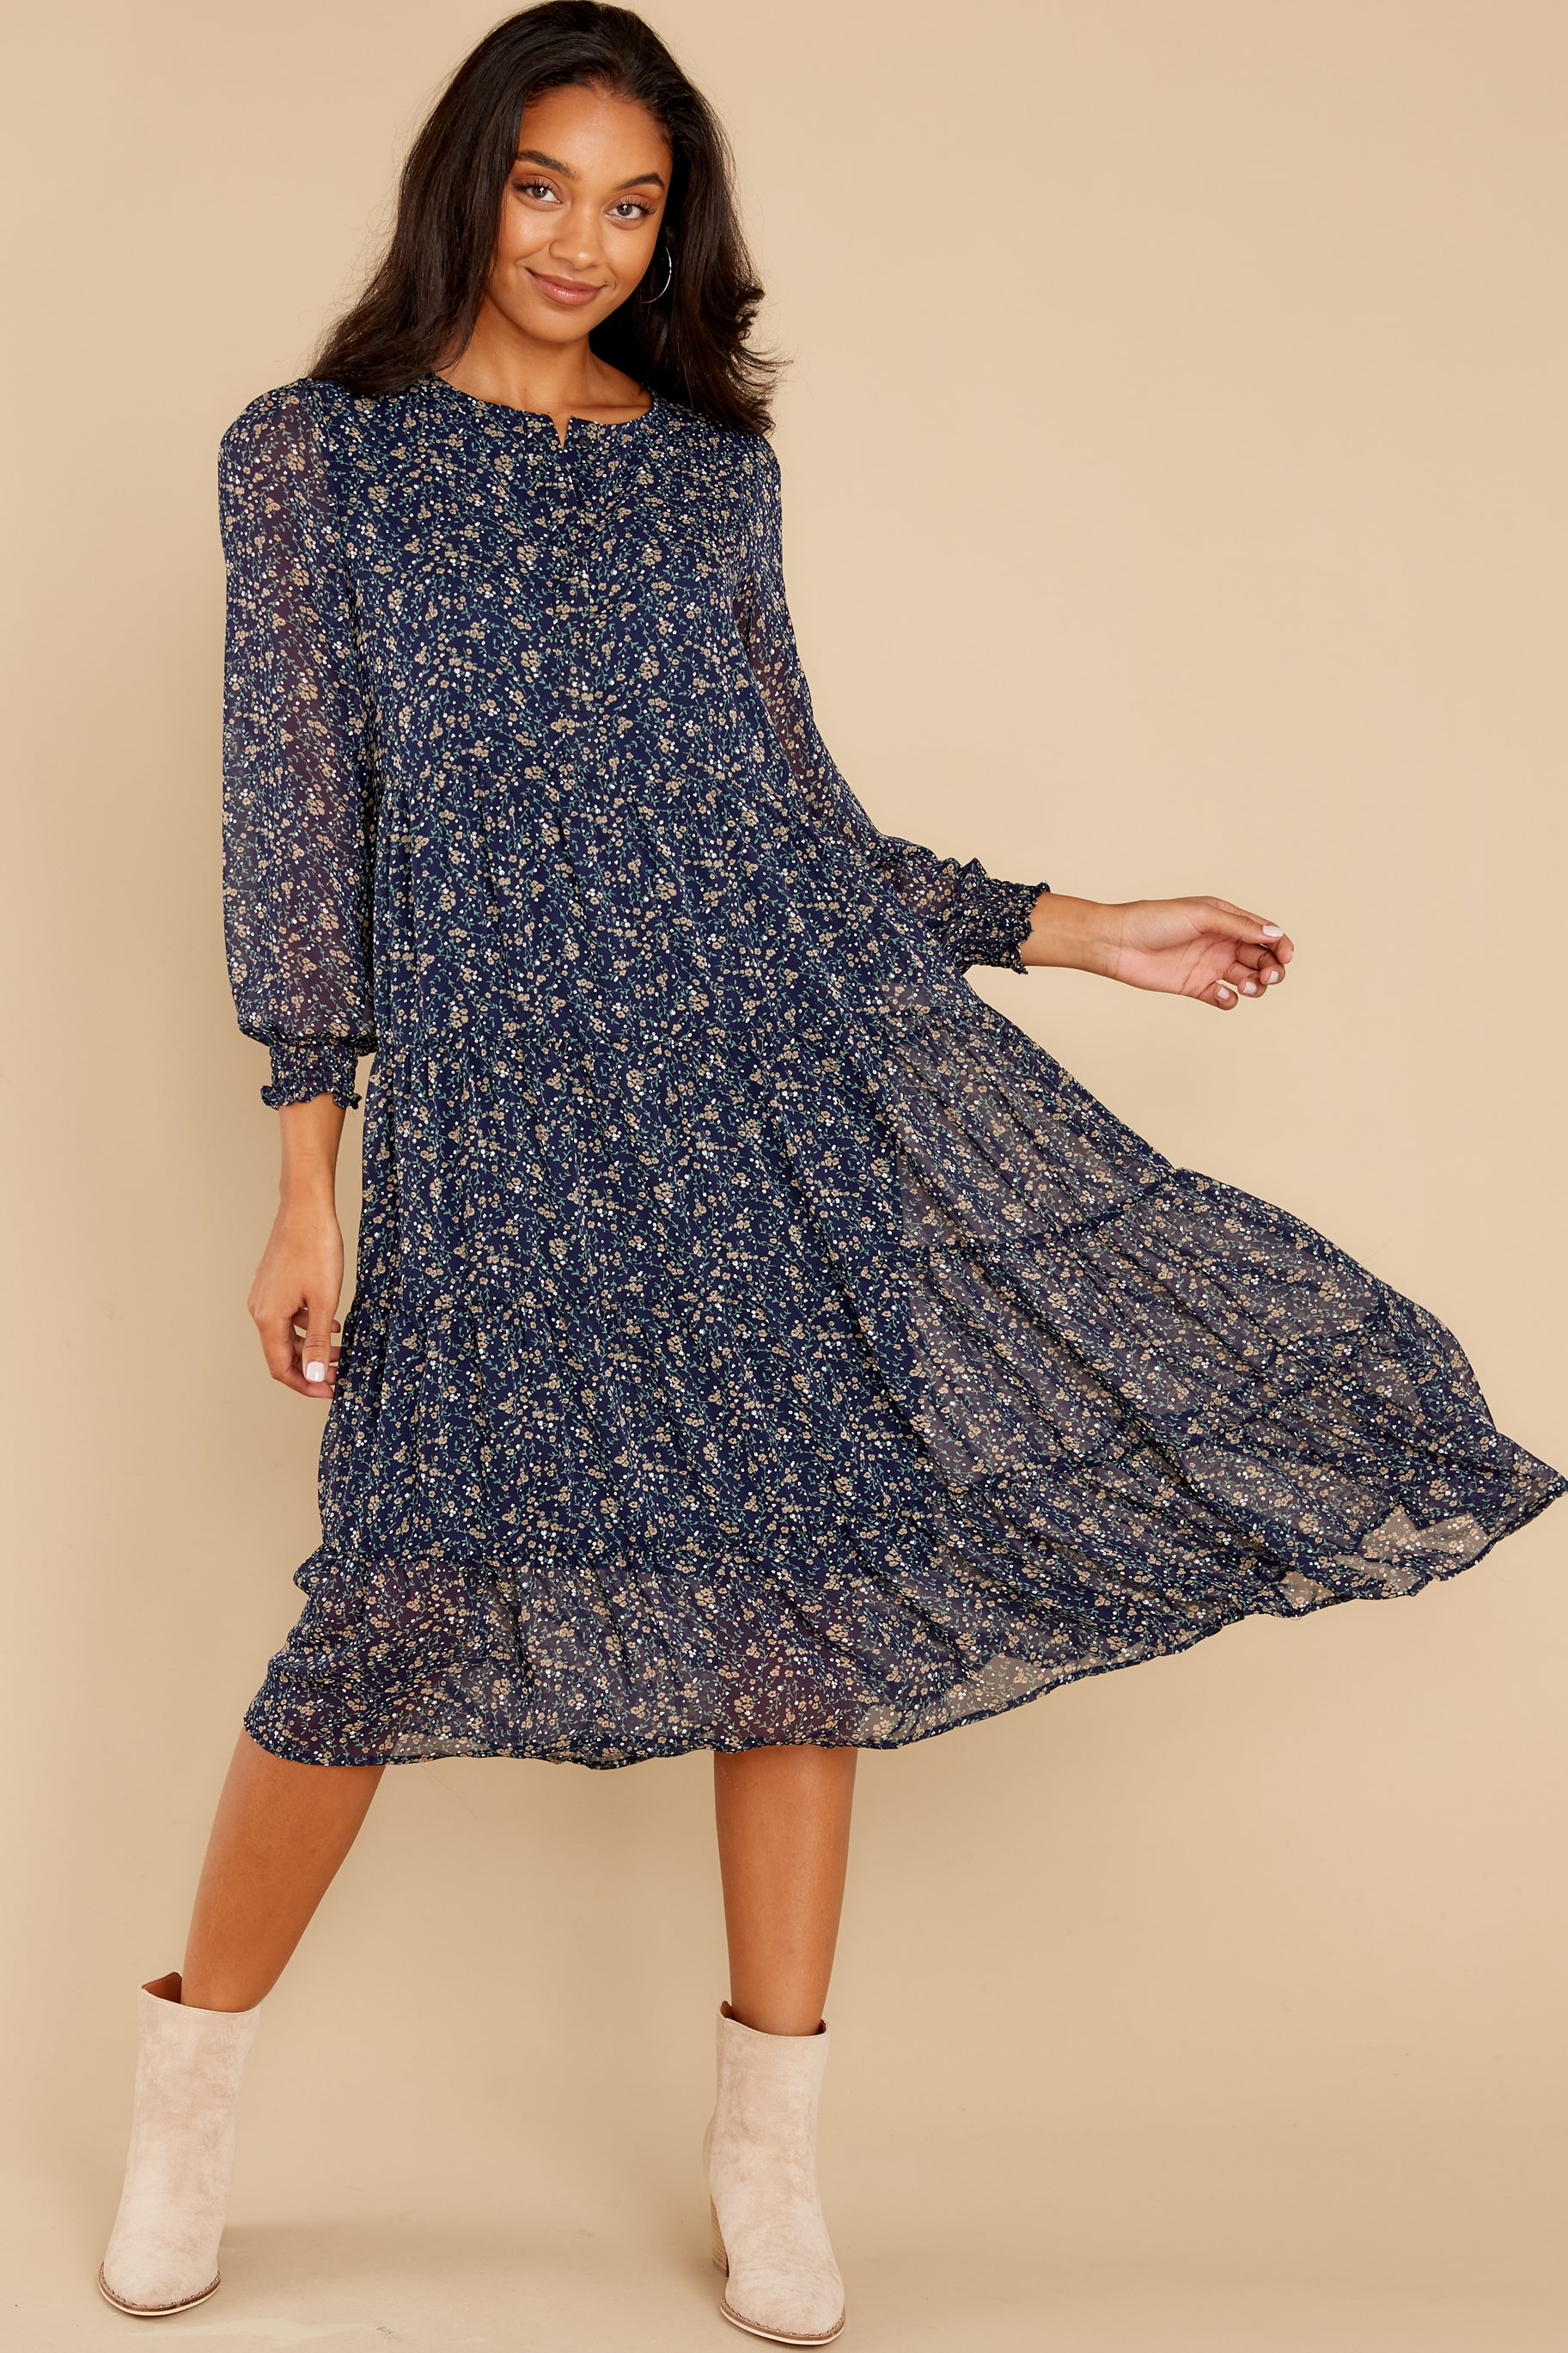 4 So It Goes Navy Floral Print Midi Dress at reddress.com